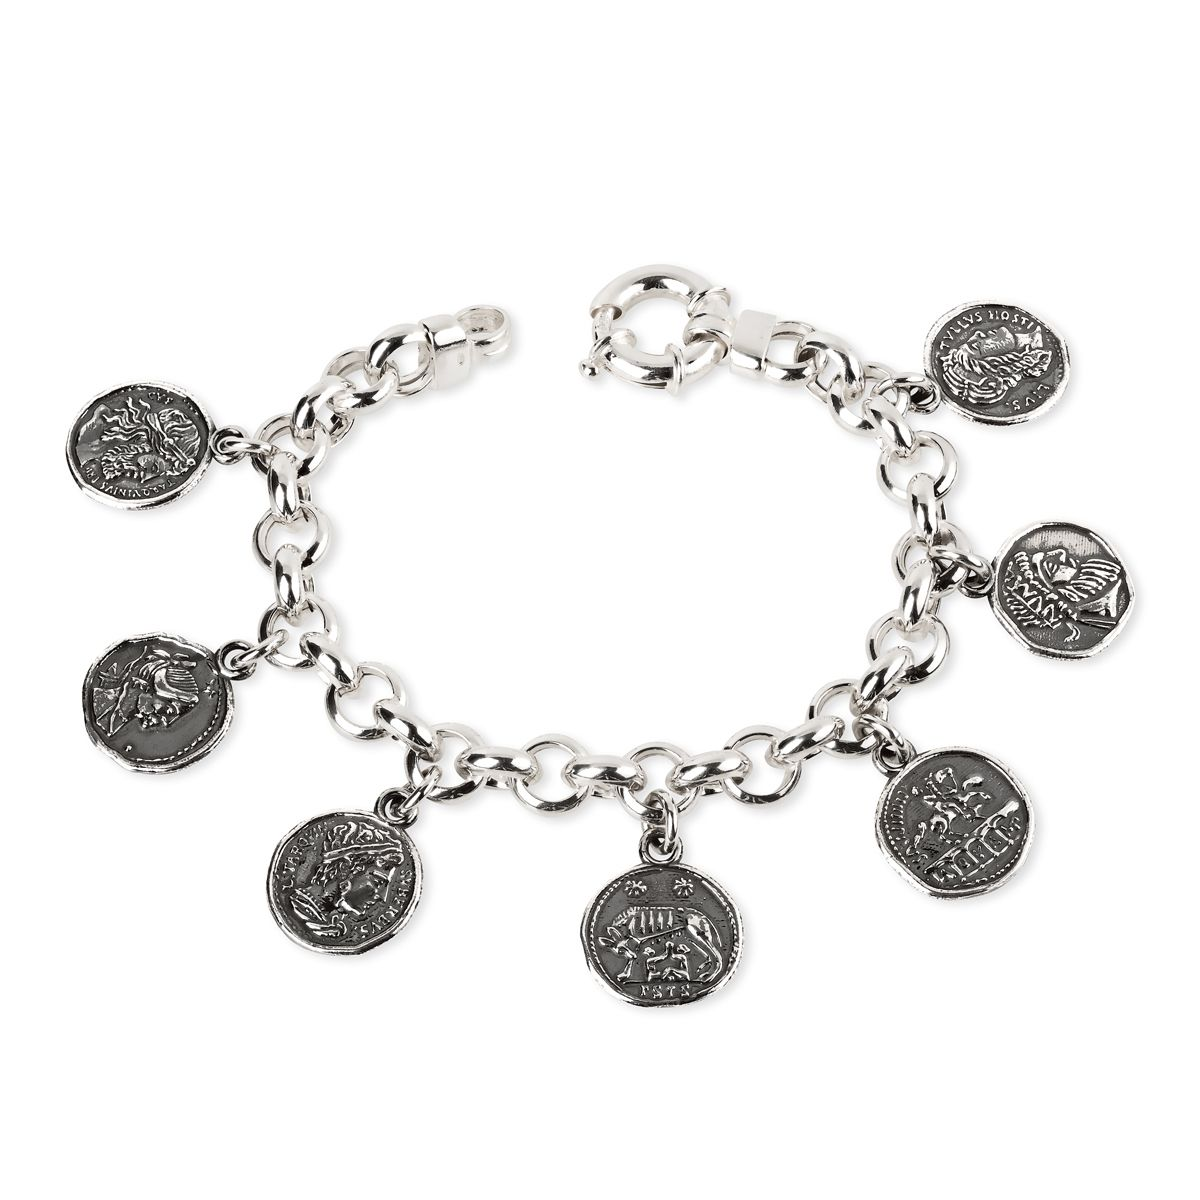 Bracelet with Ancient Rome Coins (33688)